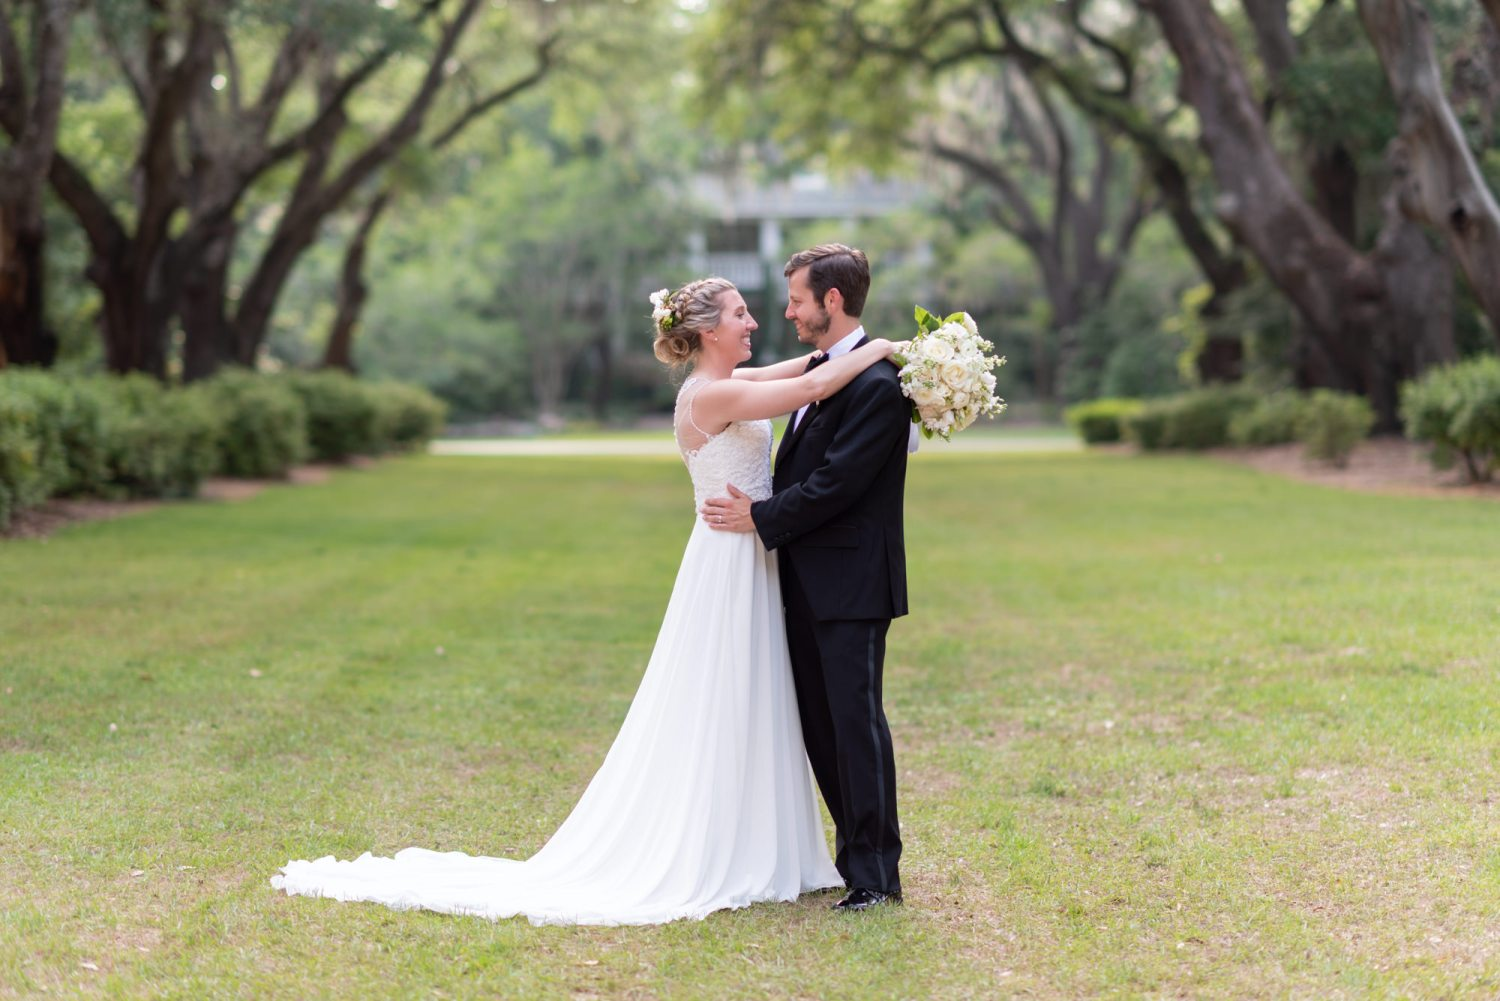 Bride putting her arms around the groom - Wachesaw Plantation